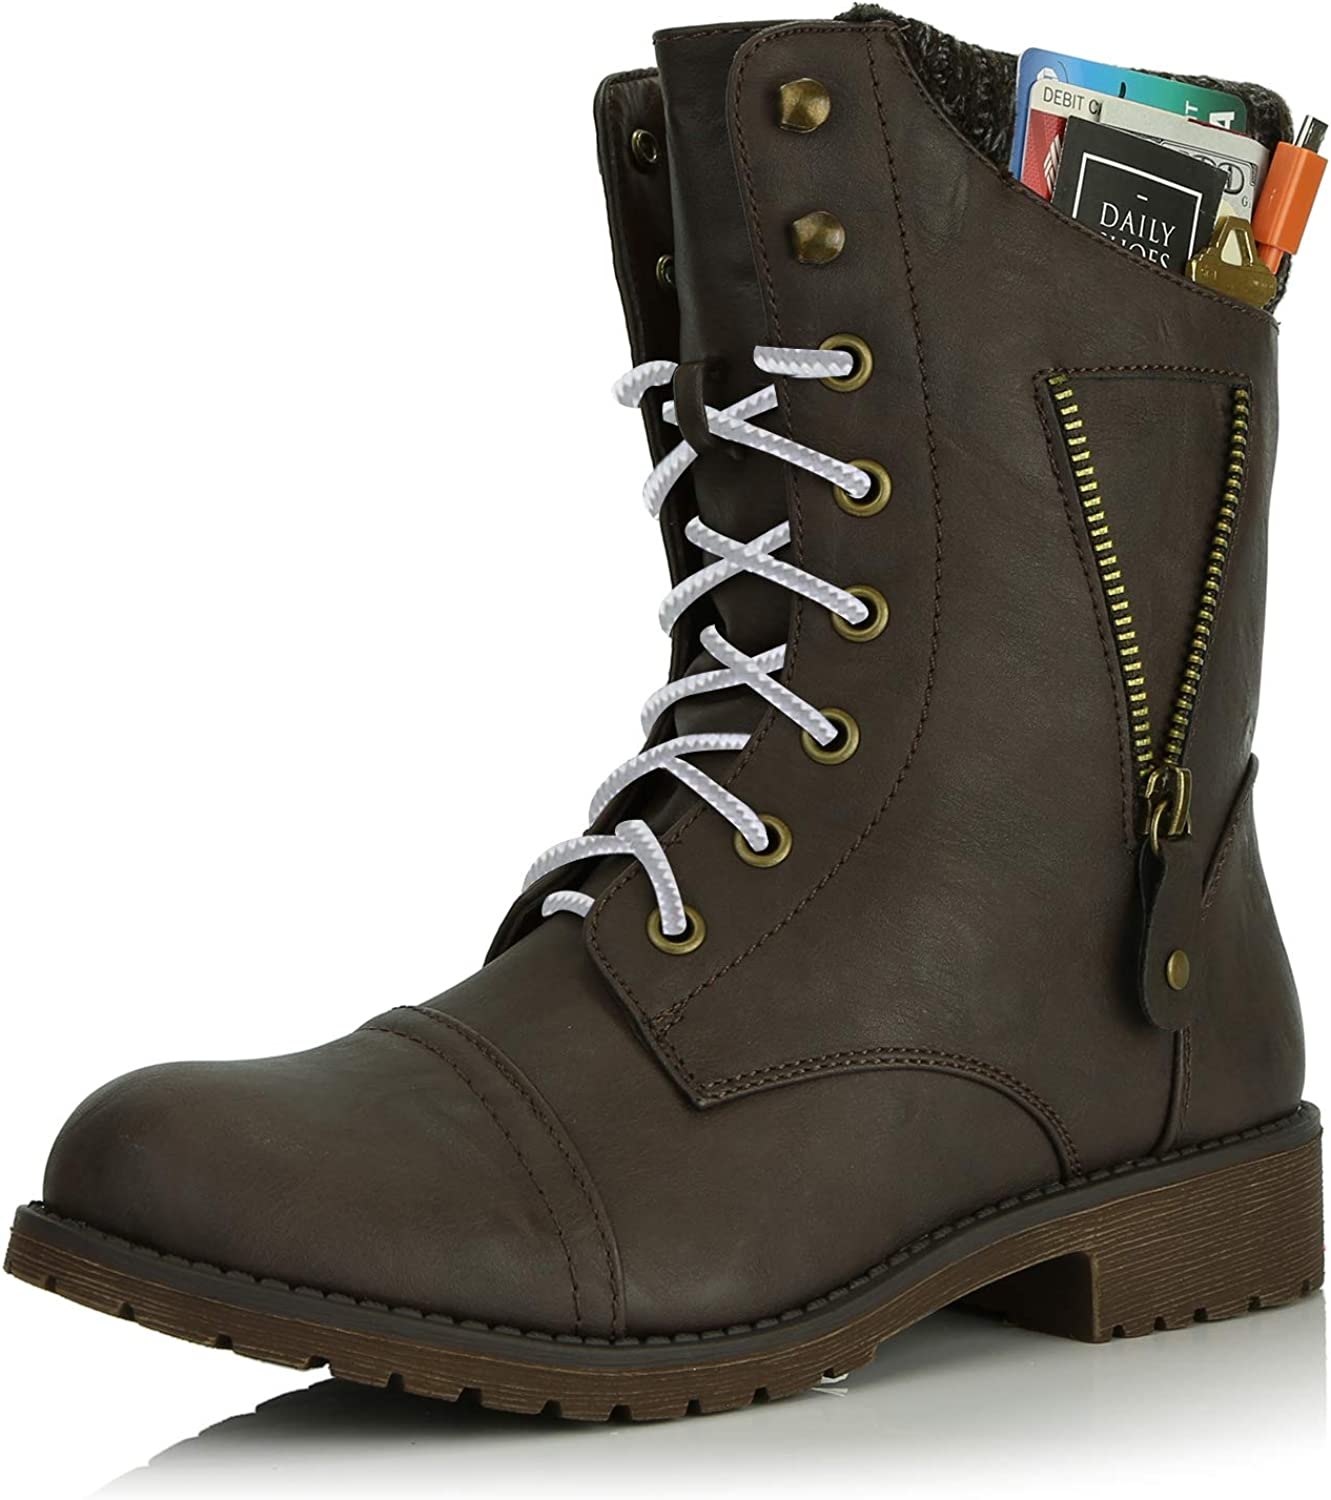 DailyShoes Women's Military Lace Up Buckle Combat Boots Zipper Sweater Ankle High Exclusive Credit Card Pocket, Grey White